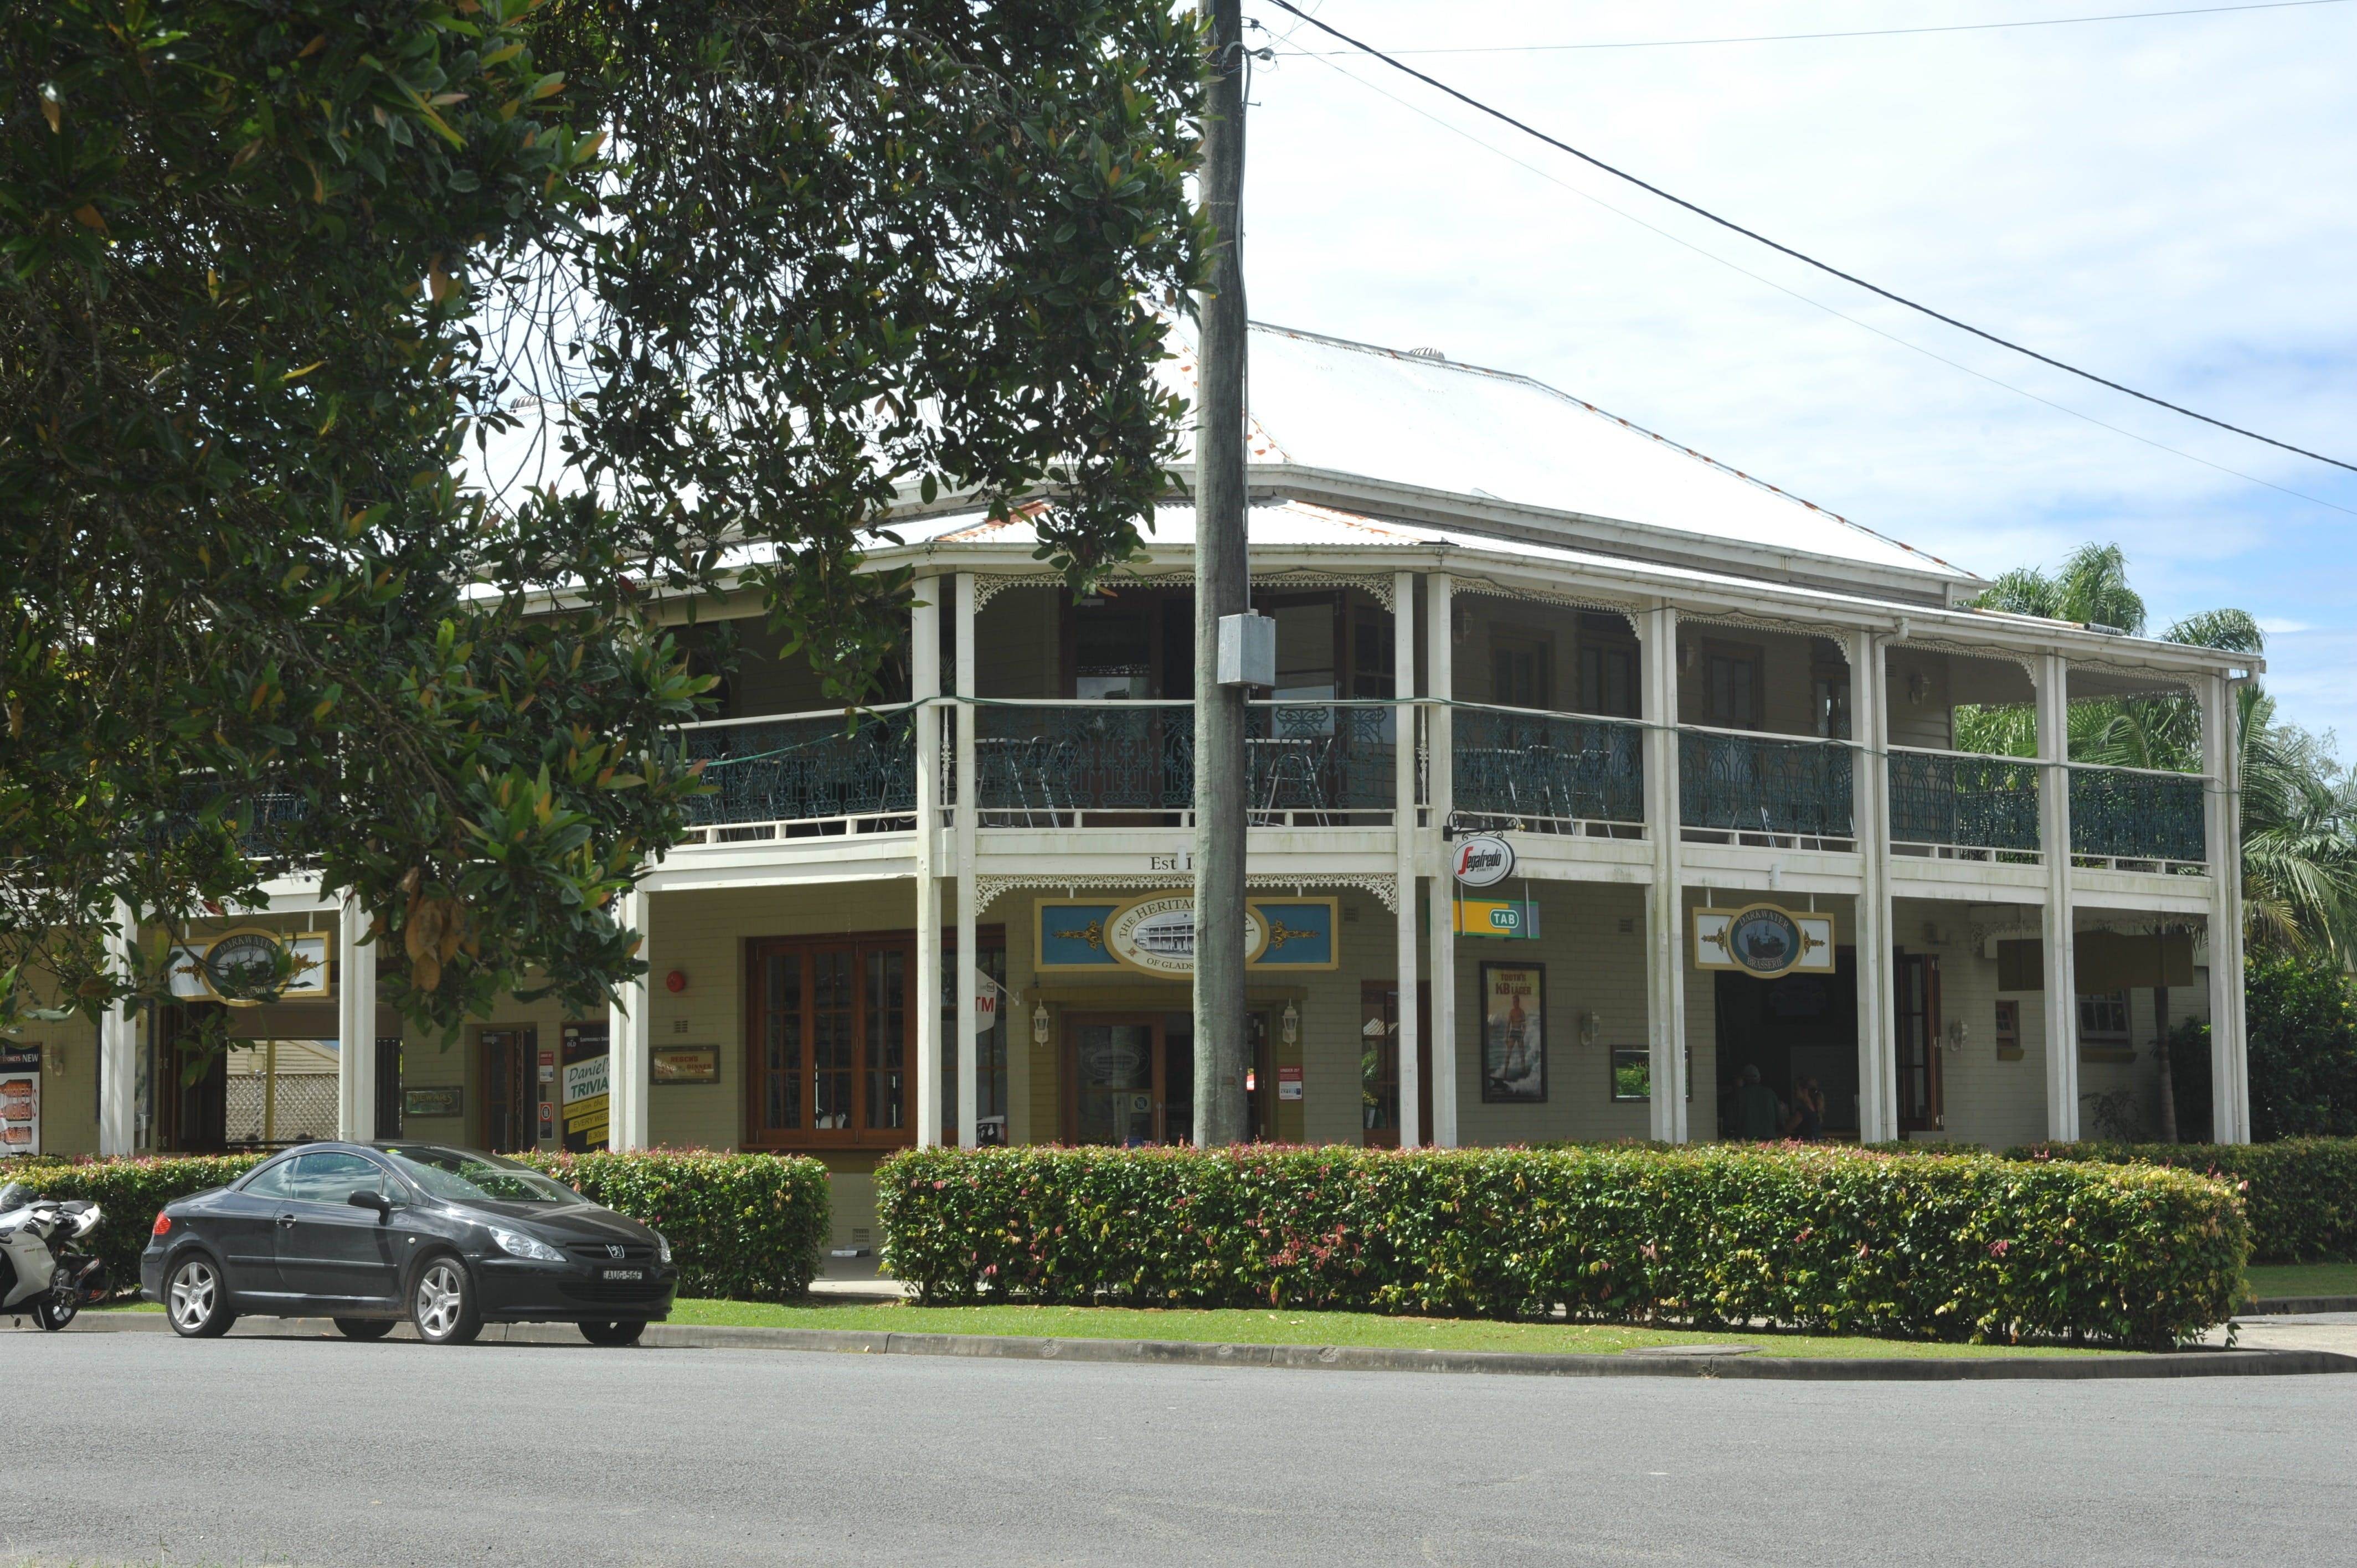 Boutique shopping and heritage buildings in Gladstone